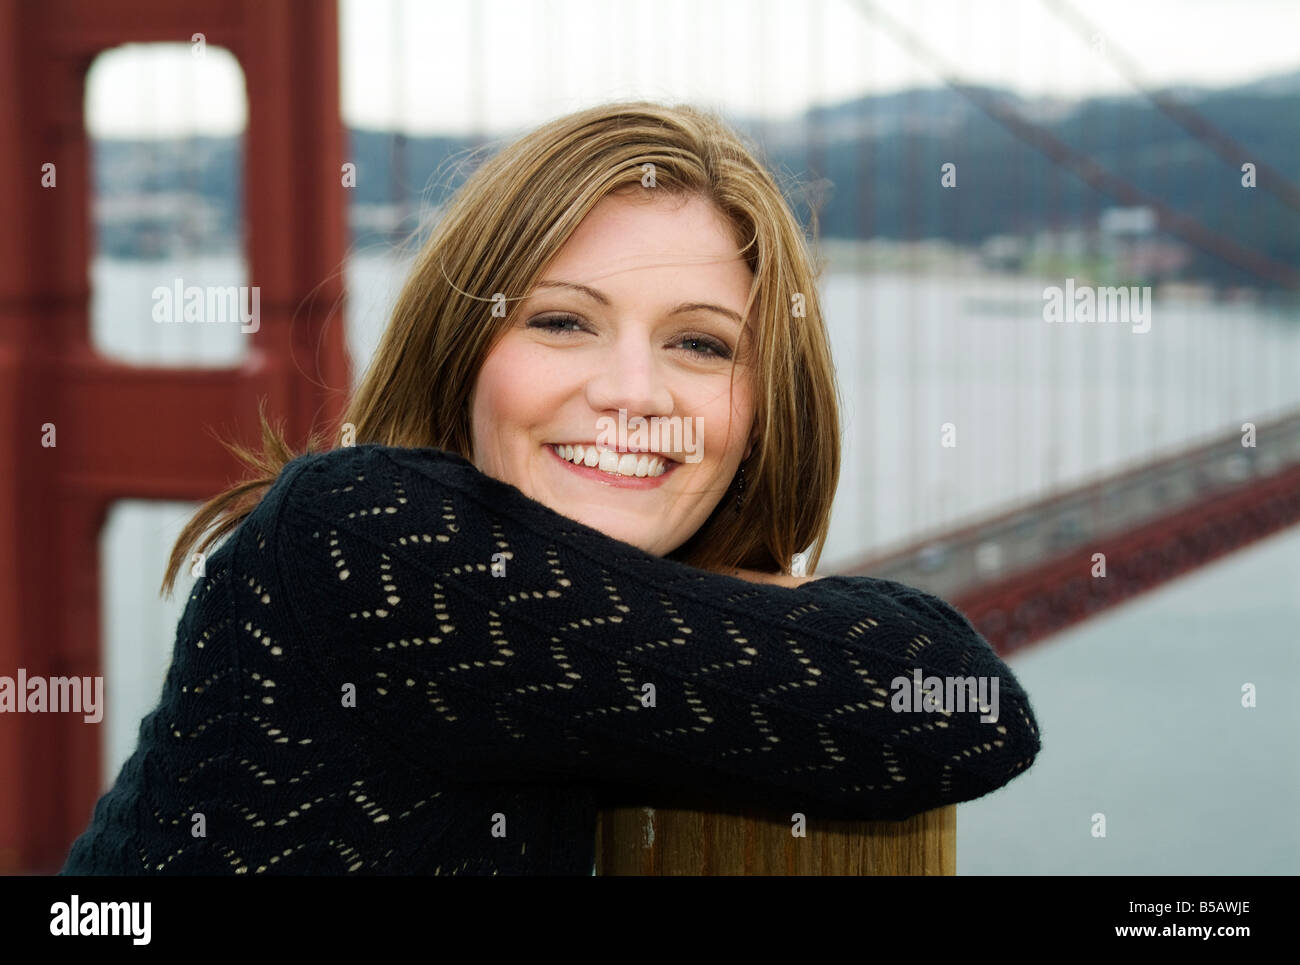 San francisco dating for alpha females